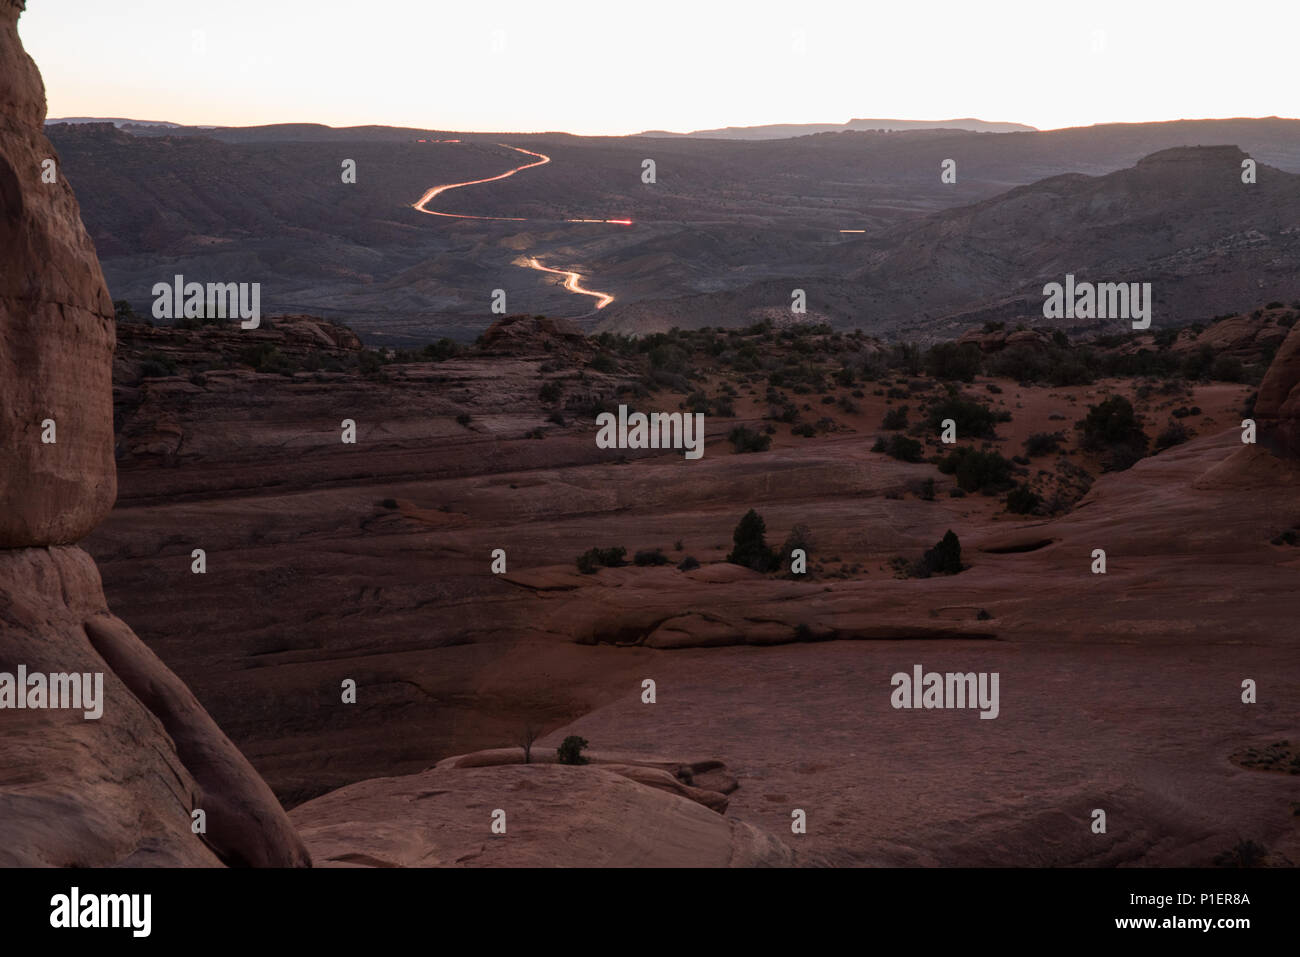 A pink sunset view over Arches National Park, Utah. - Stock Image